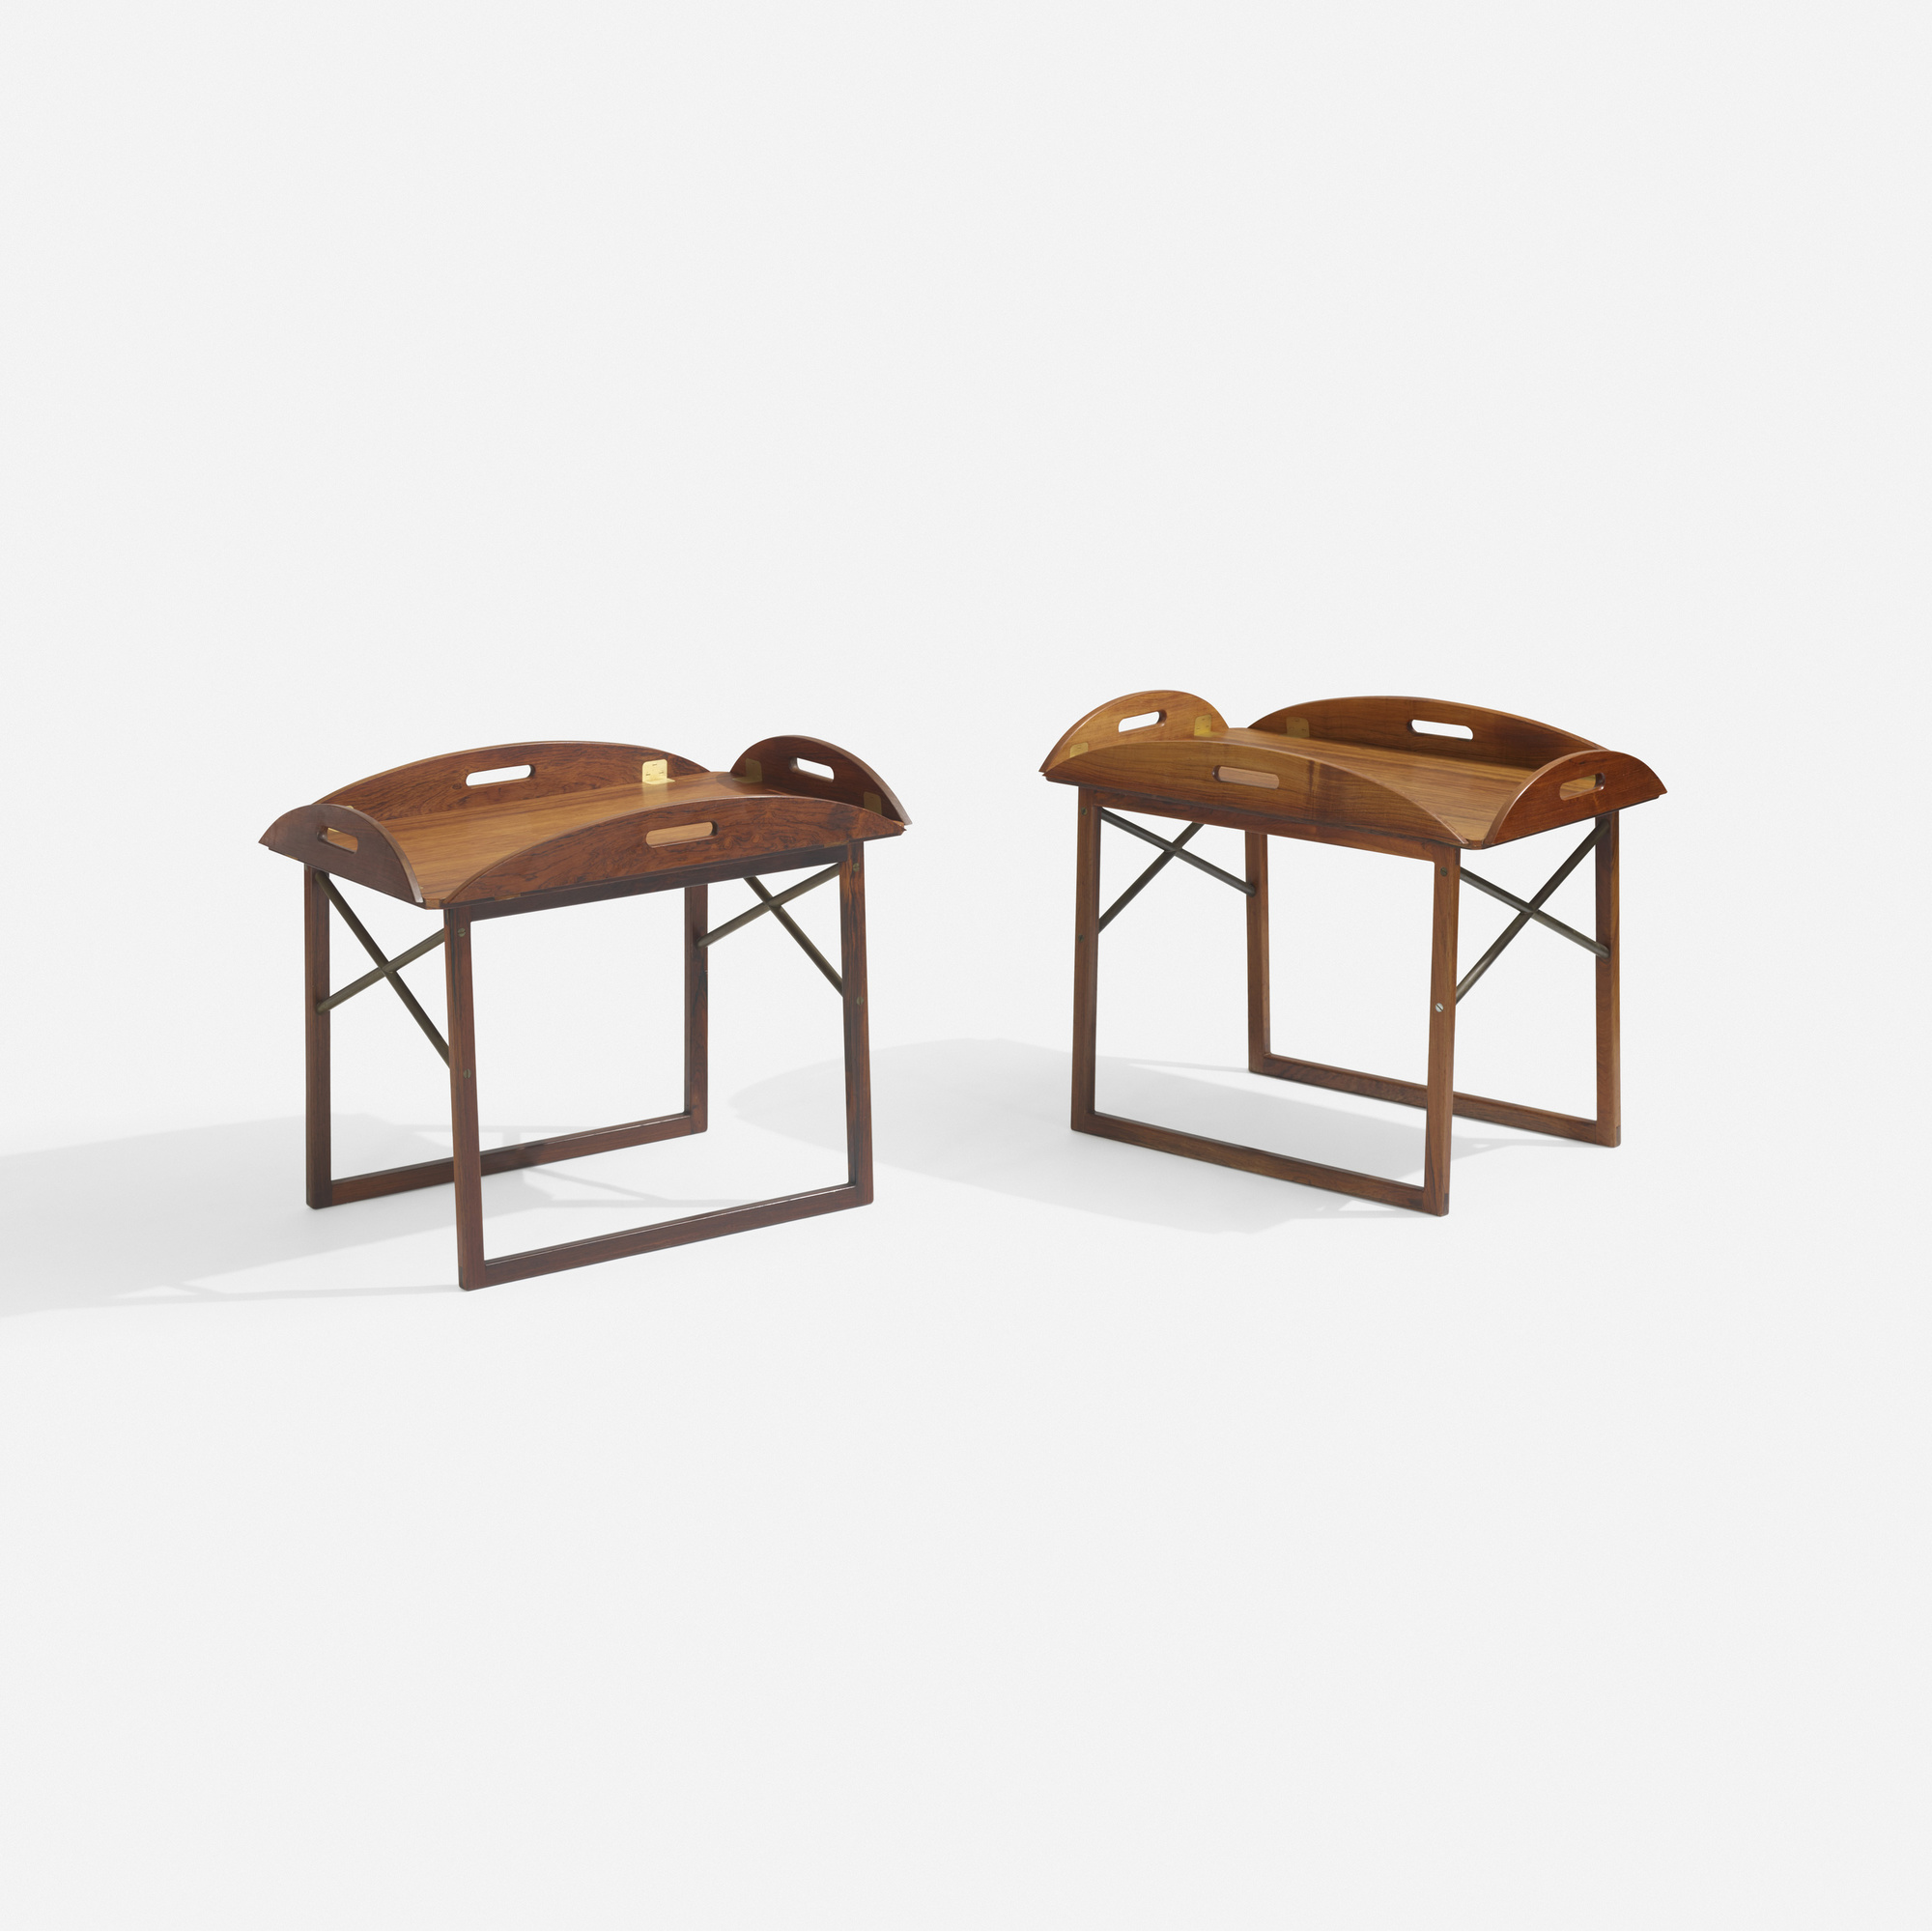 284: Svend Langkilde / tray tables, pair (1 of 2)